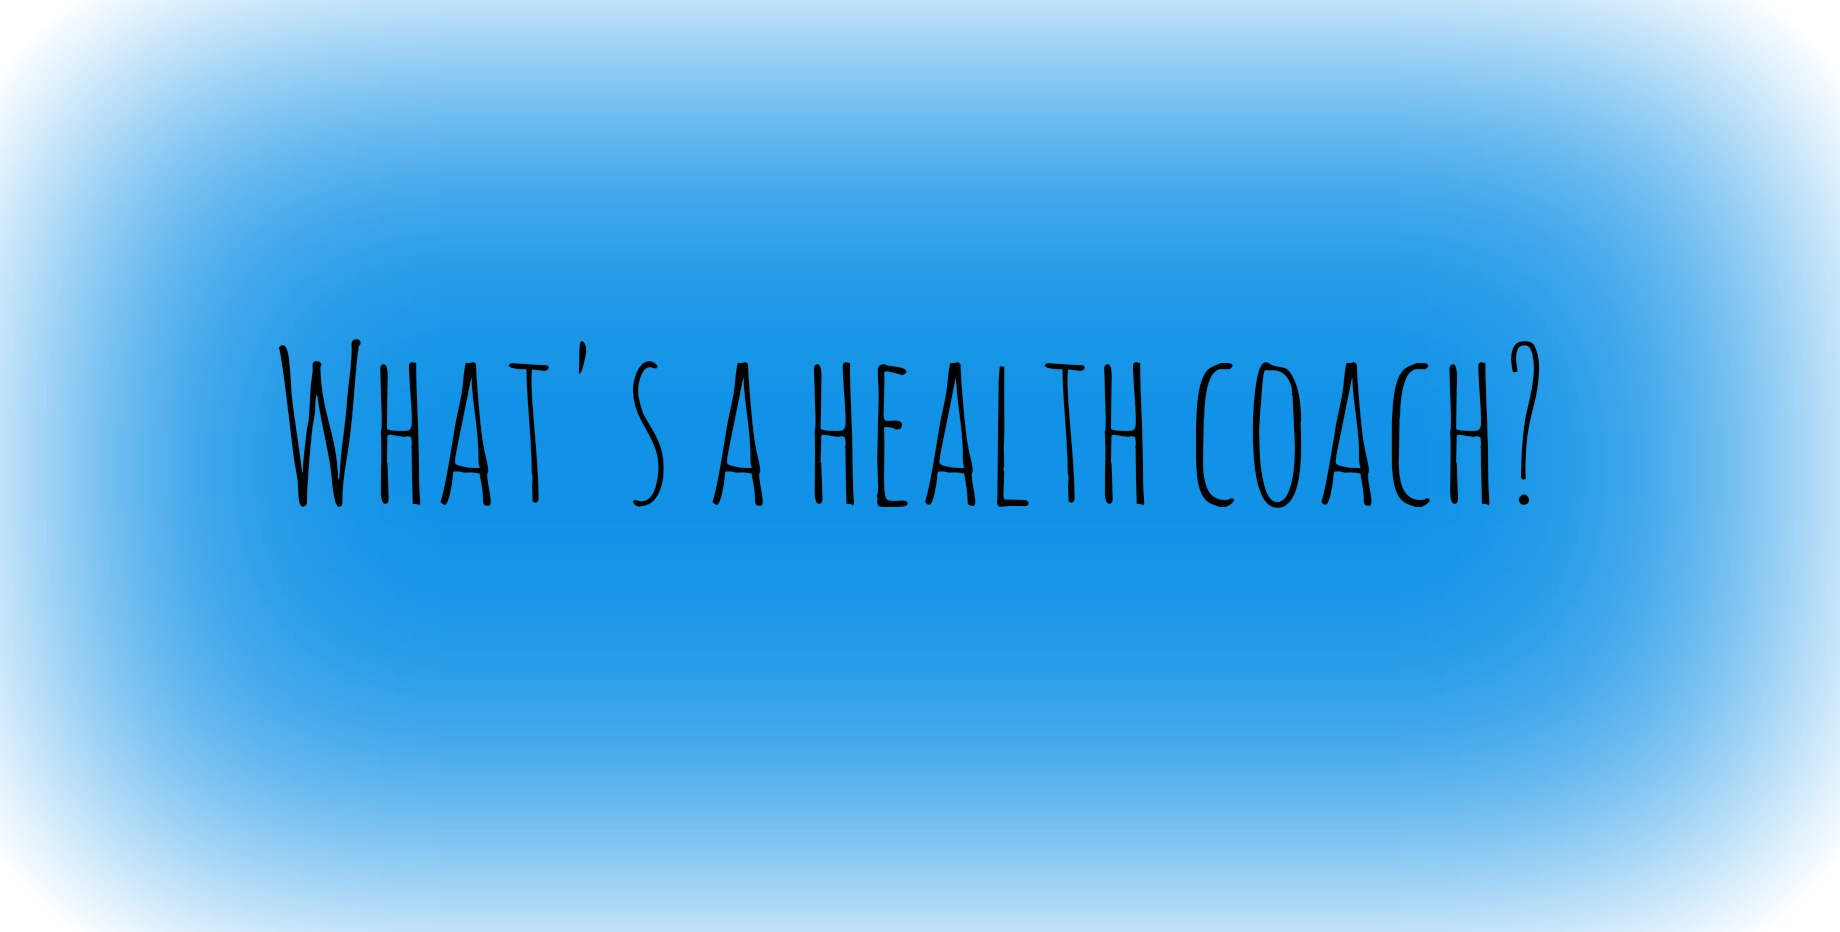 health coach offers guidance and inspiration to help clients shift